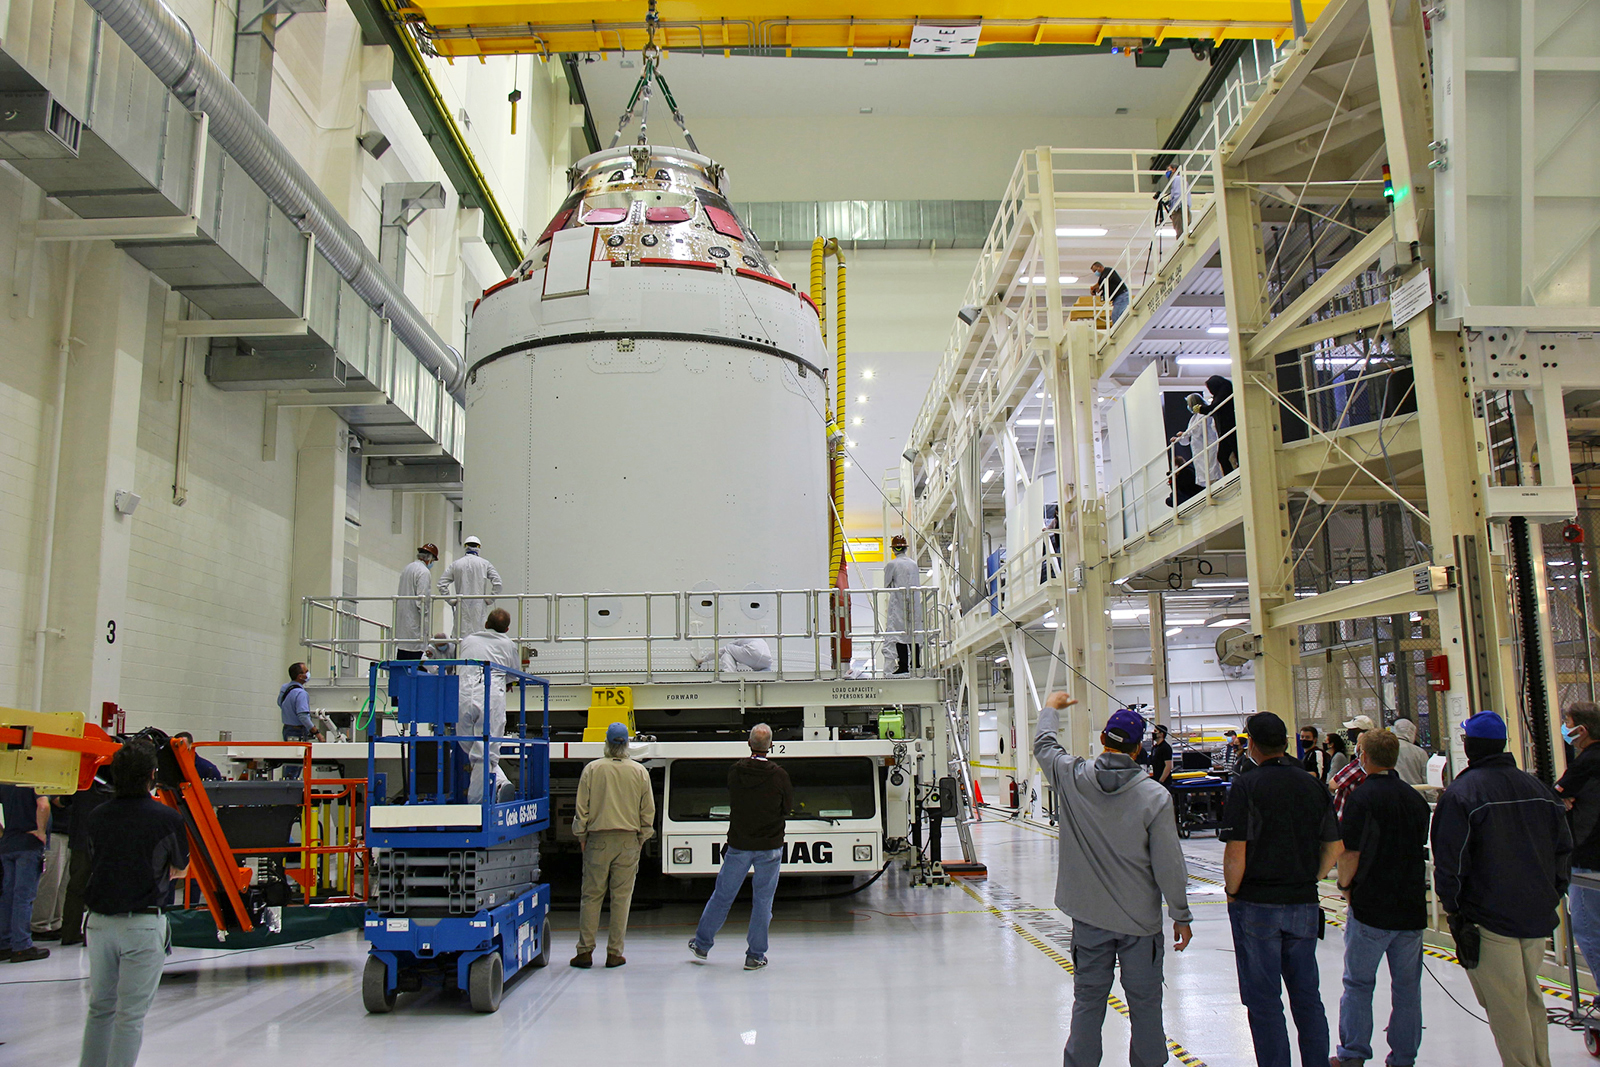 NASA's Orion spacecraft is ready to fly to the Moon – Yahoo Finance Australia